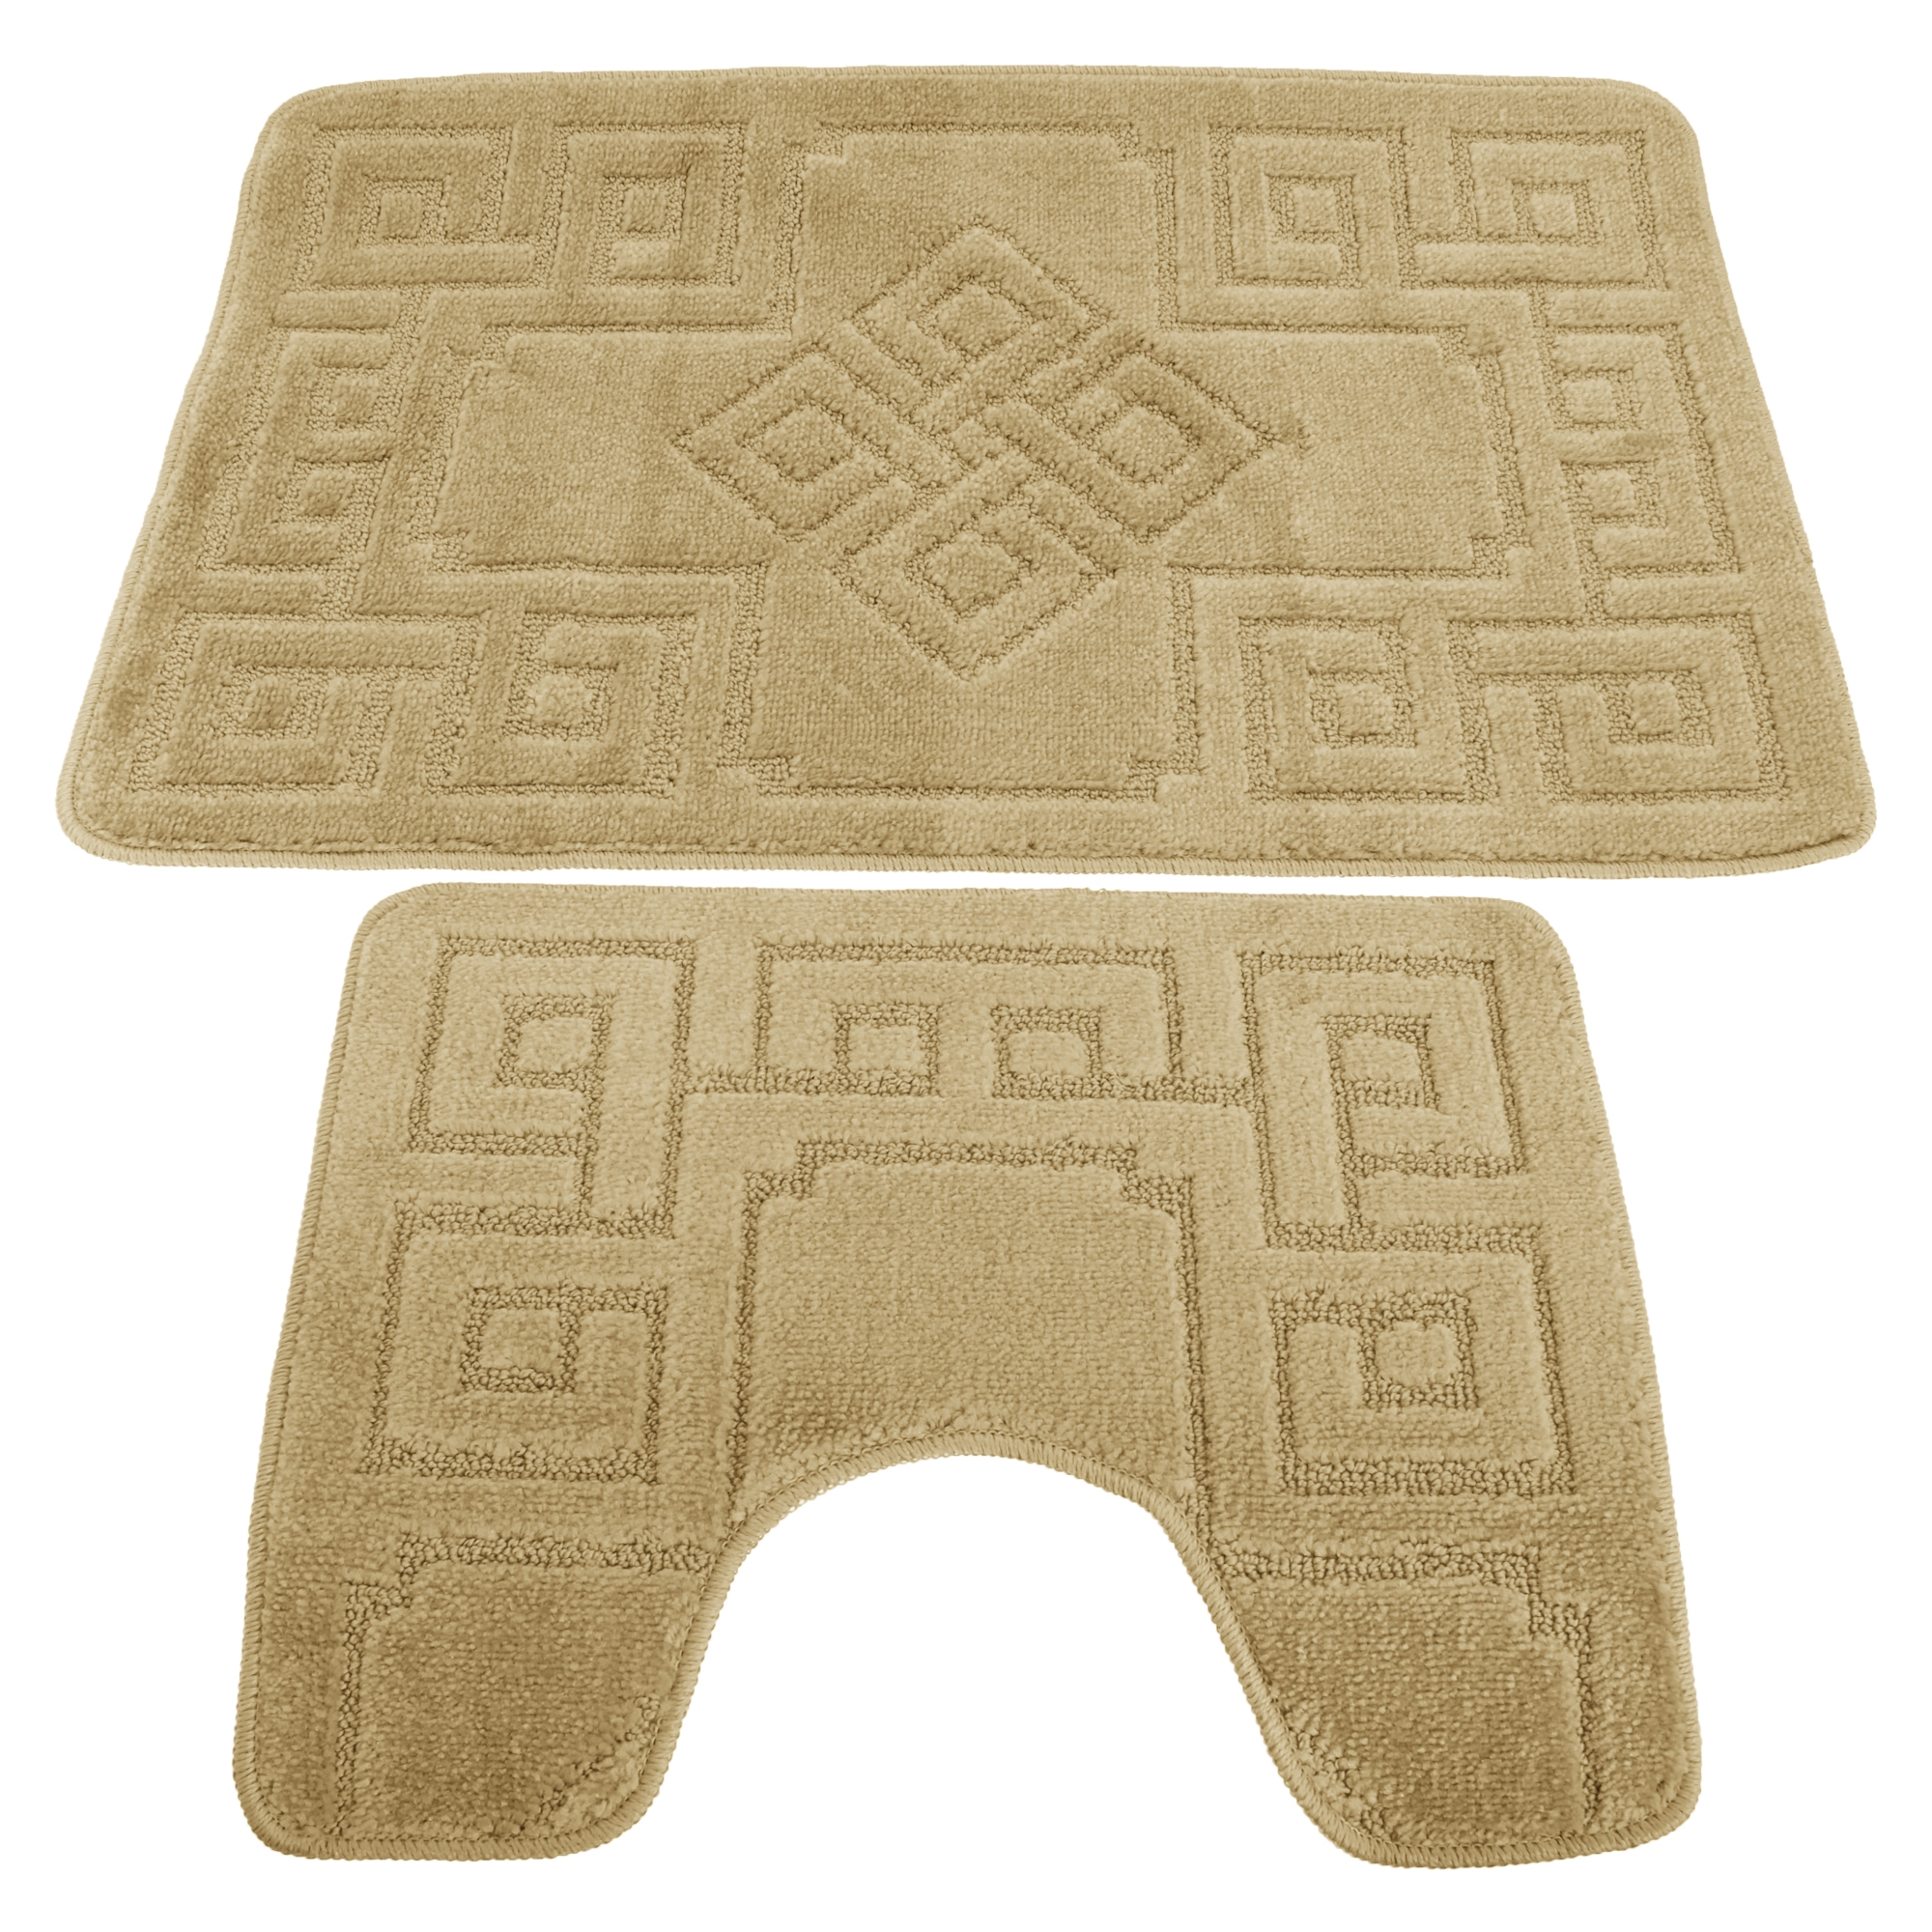 Greek Key Bath And Pedestal Mat Set